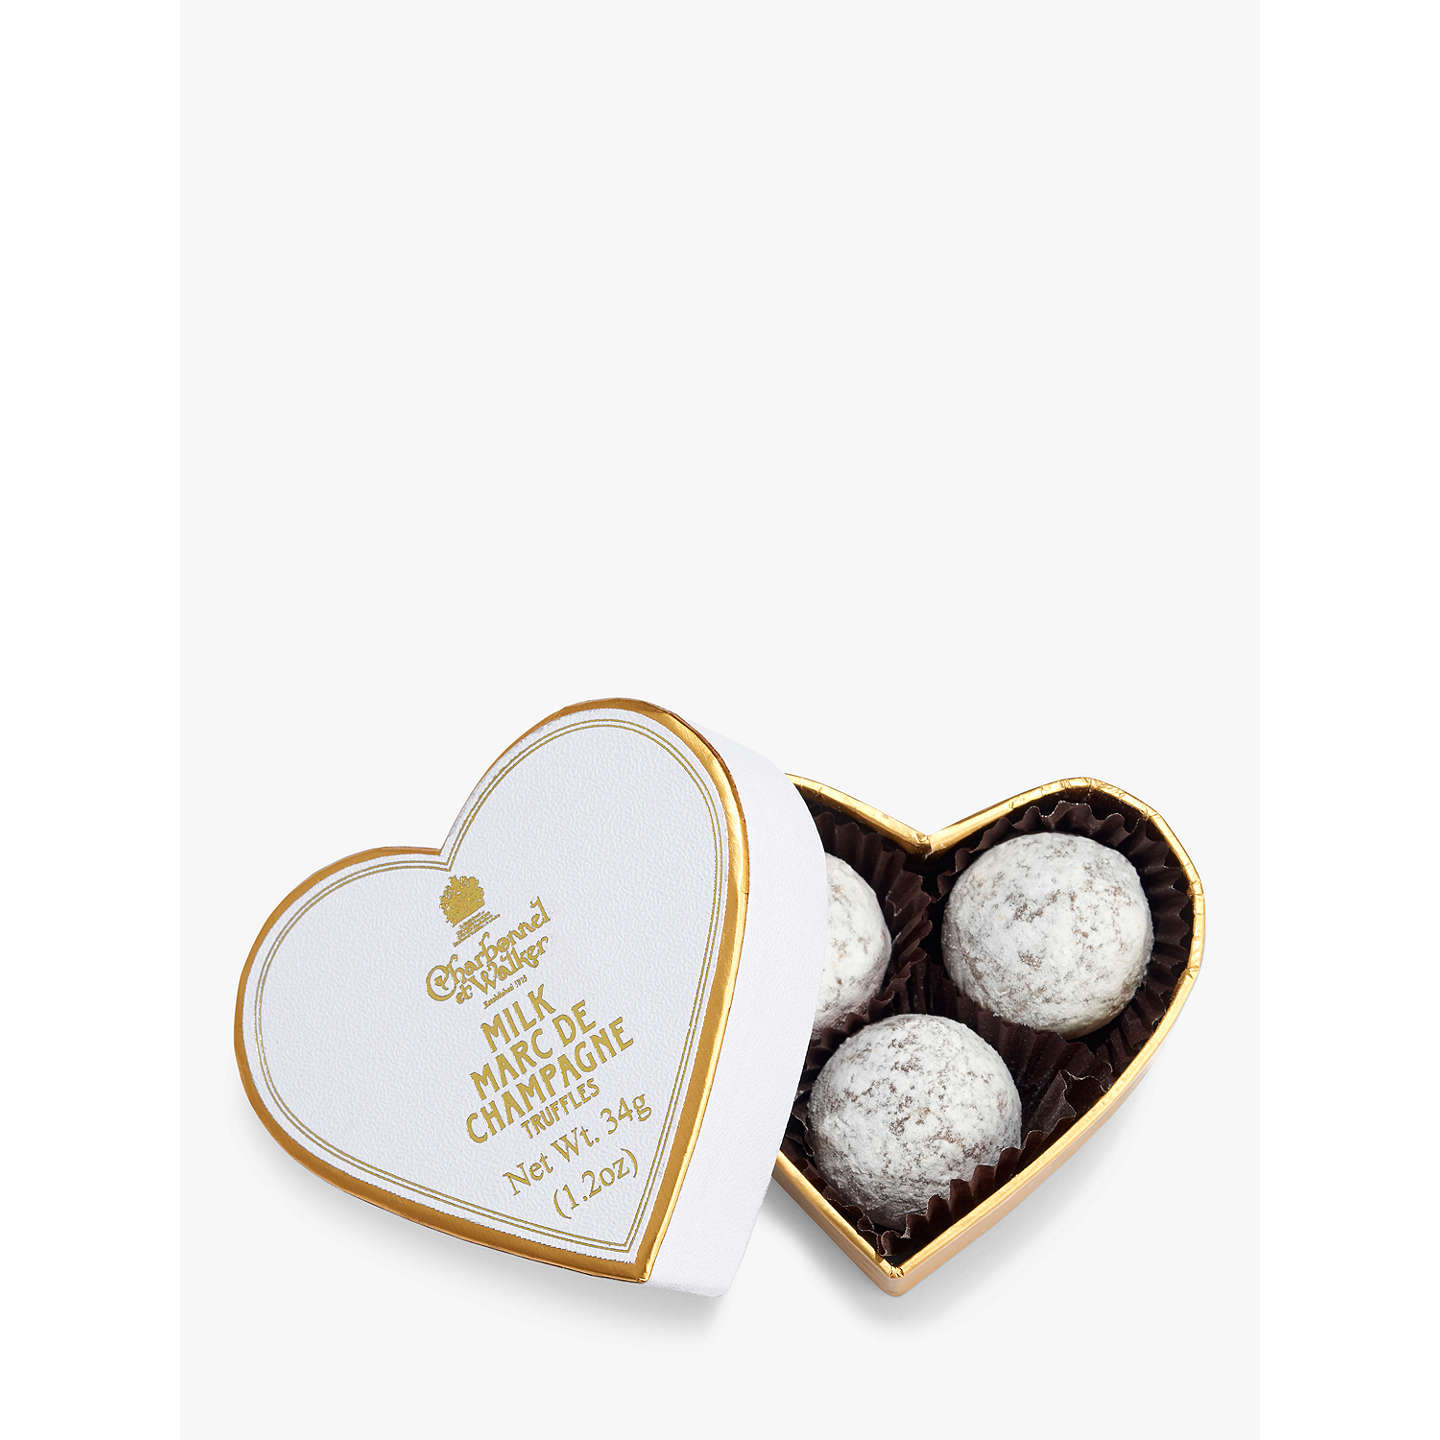 BuyCharbonnel et Walker Mini White Heart with Milk Chocolate Champagne Truffles, 34g Online at johnlewis.com